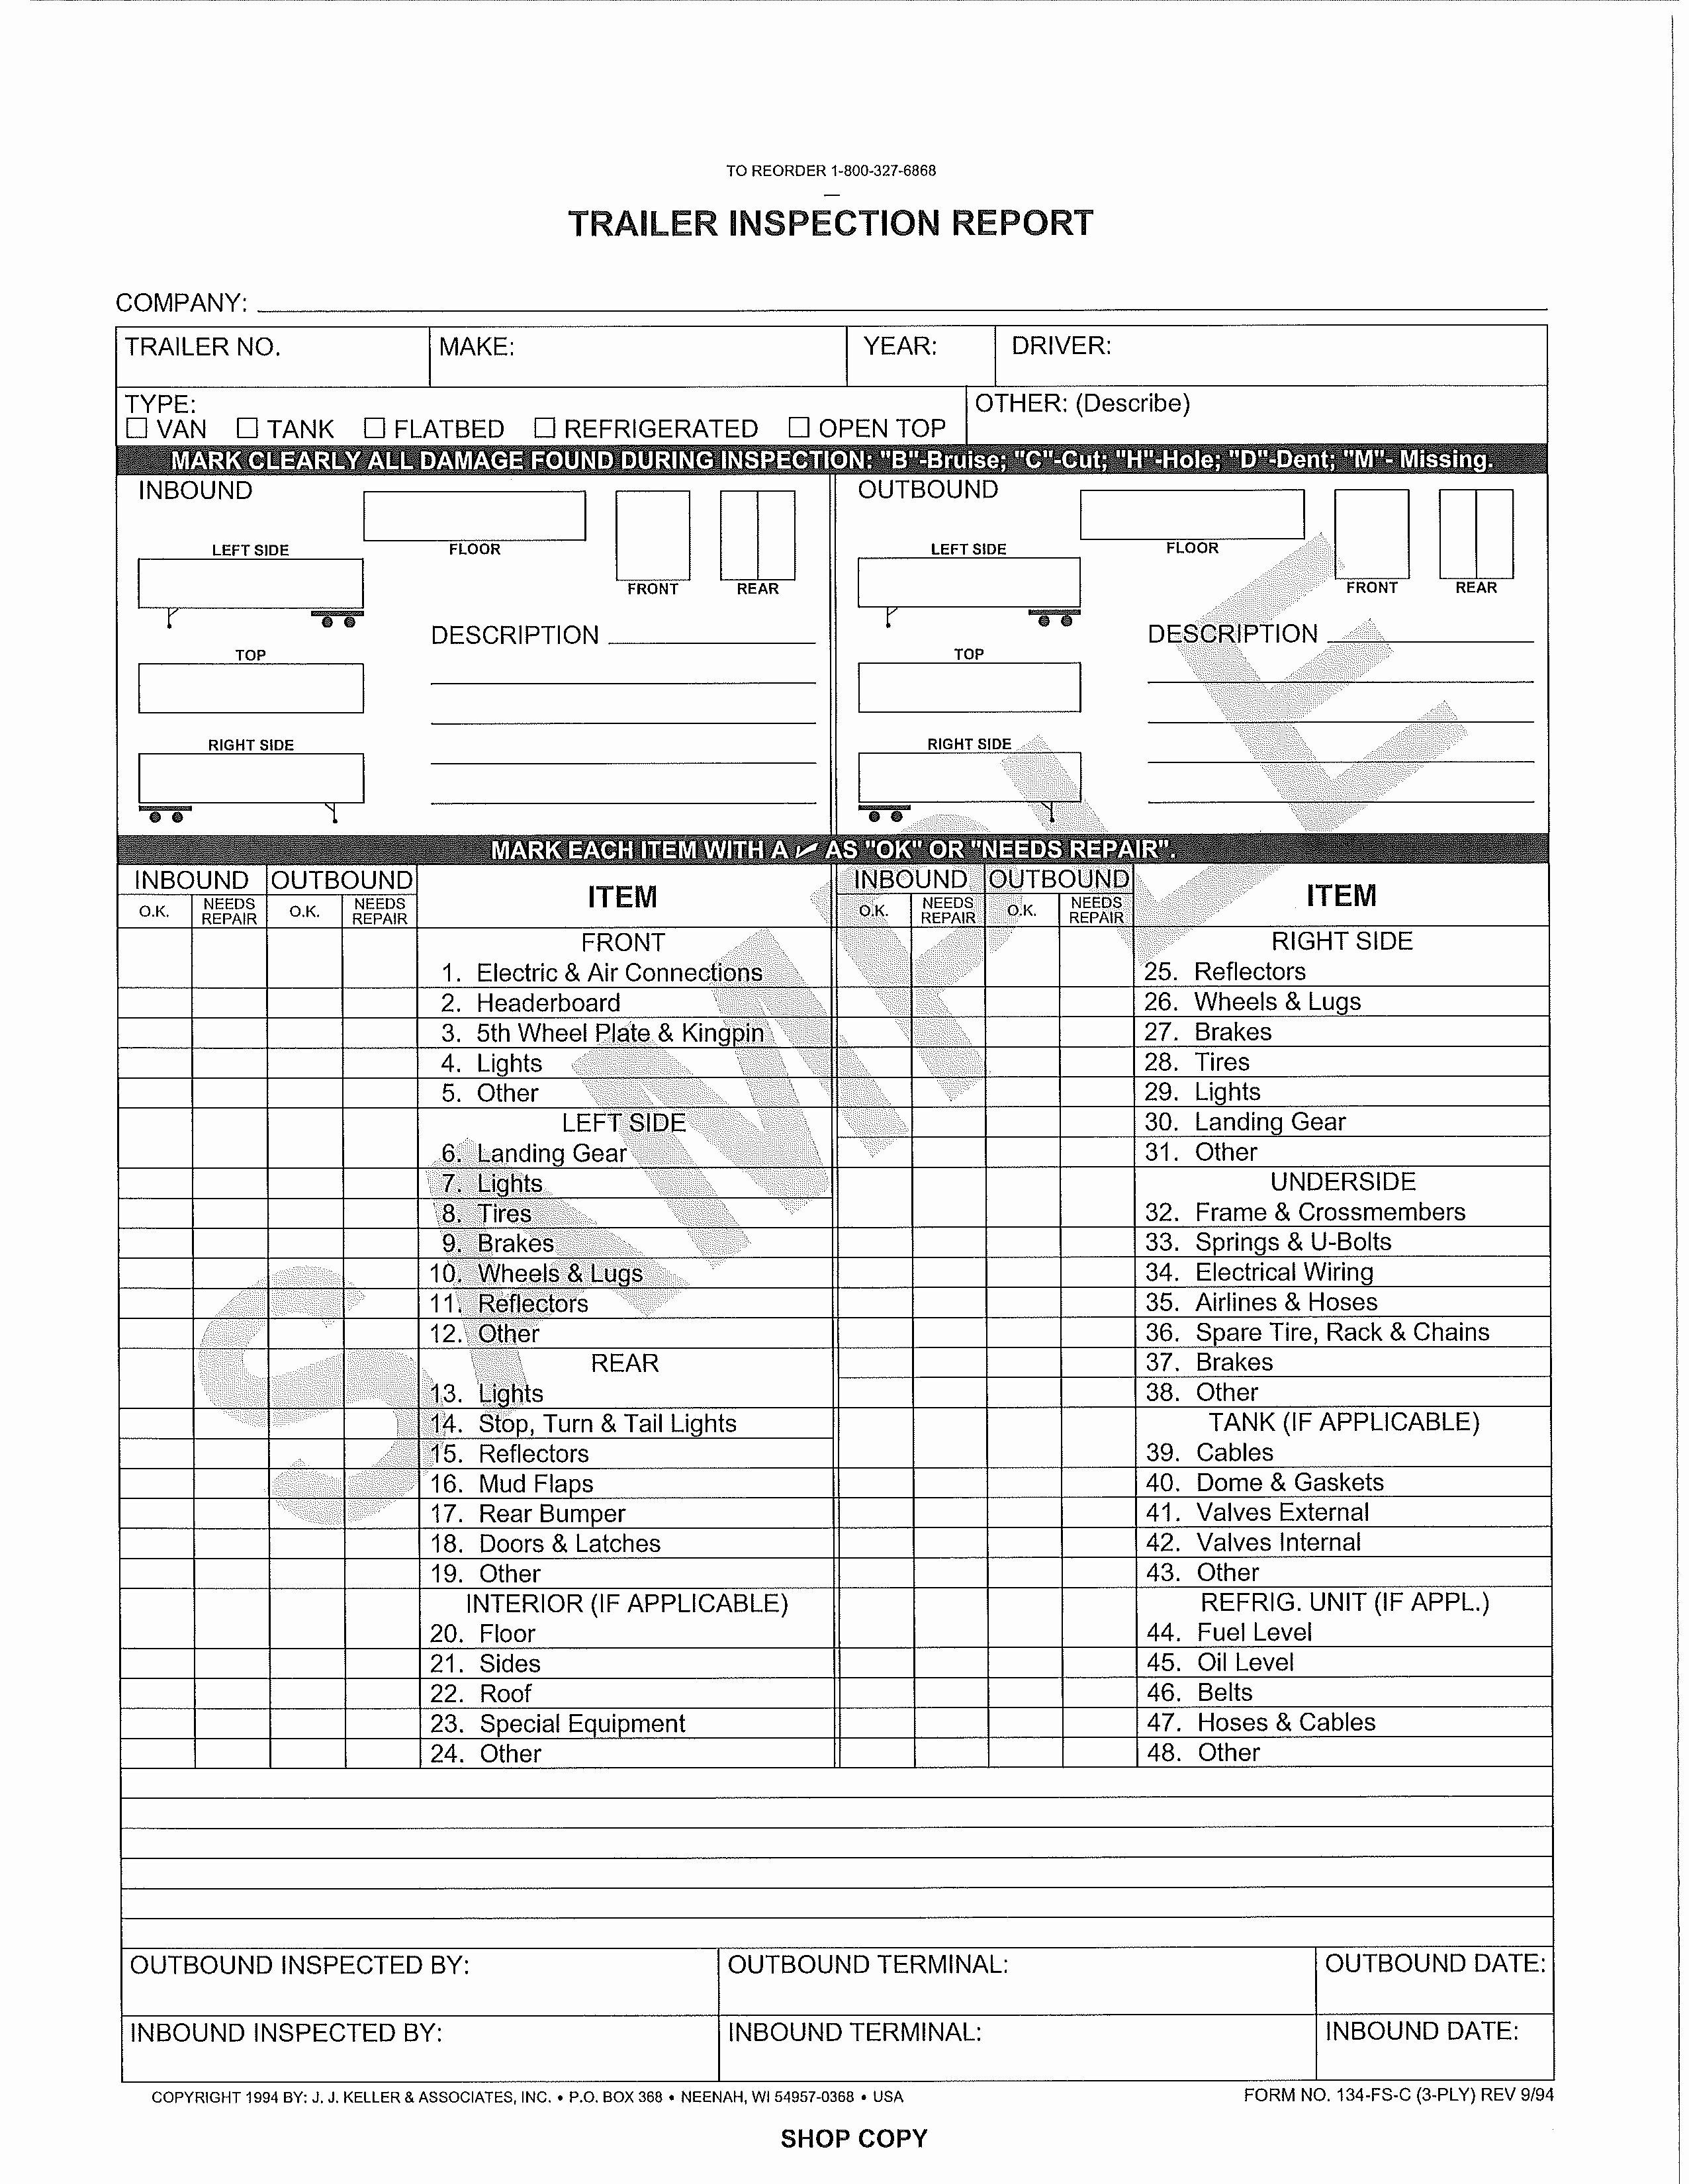 Trailer Inspection form Template New 29 Of Trailer Inspection Checklist Template